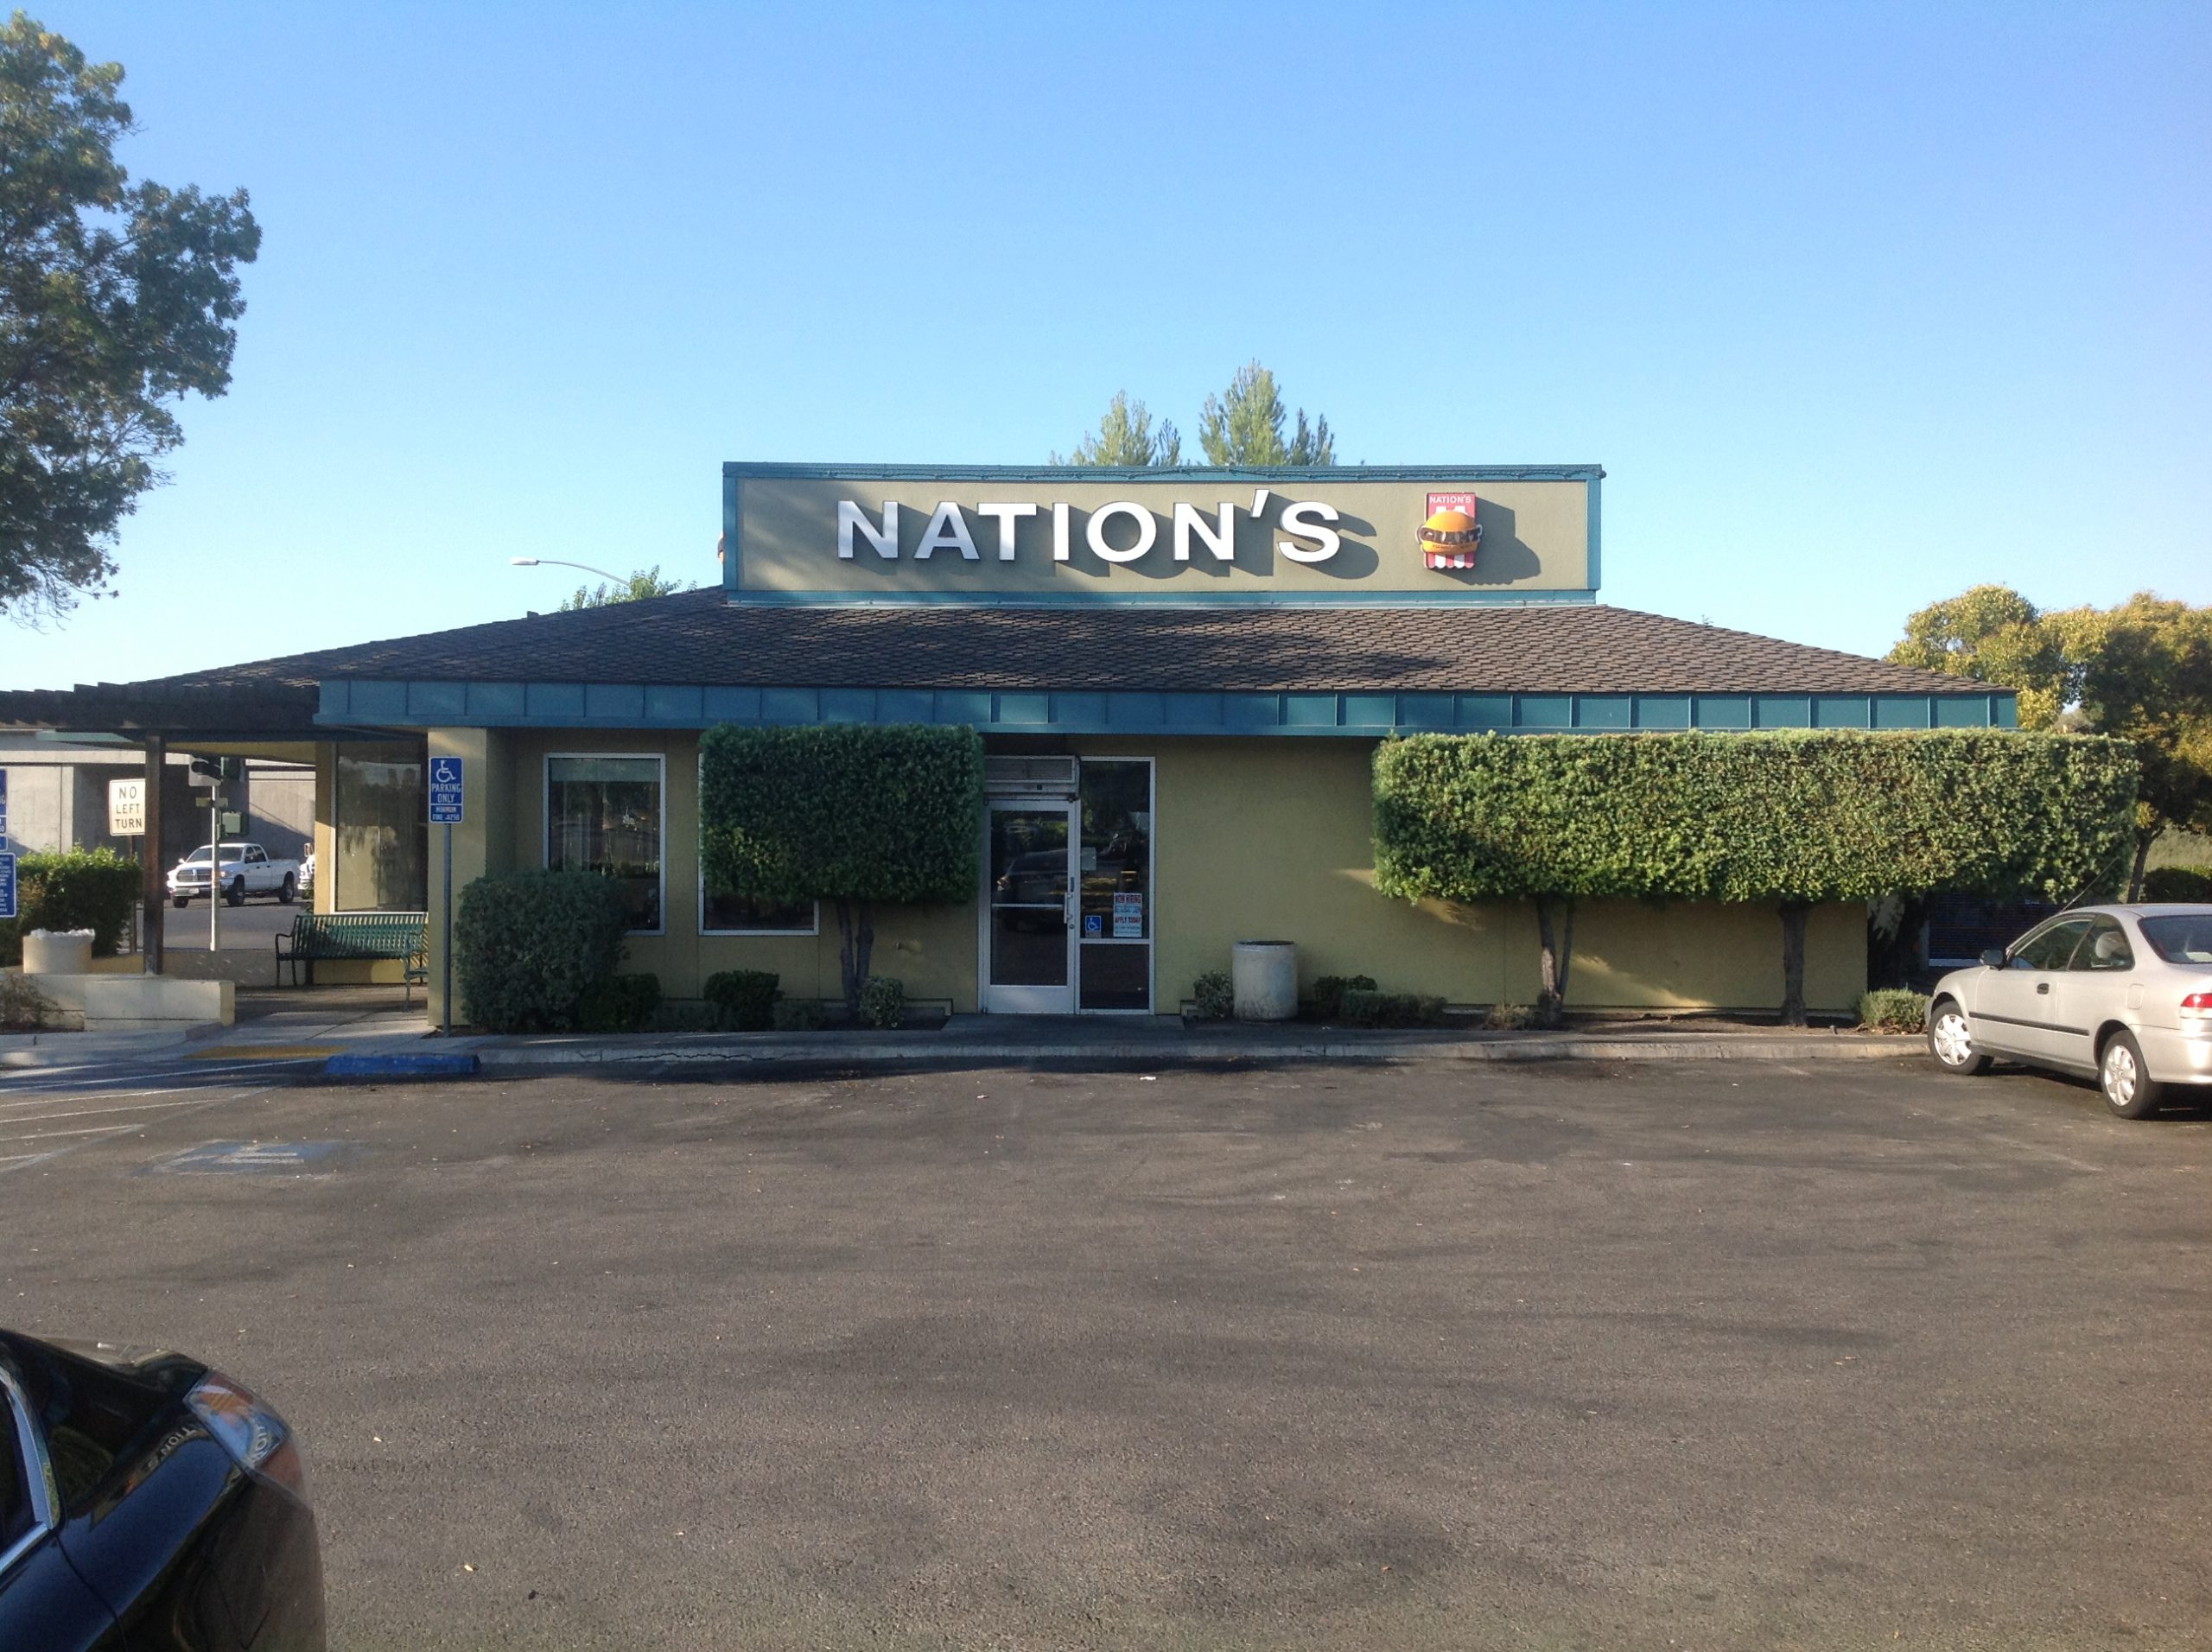 Nations-IMG_0932